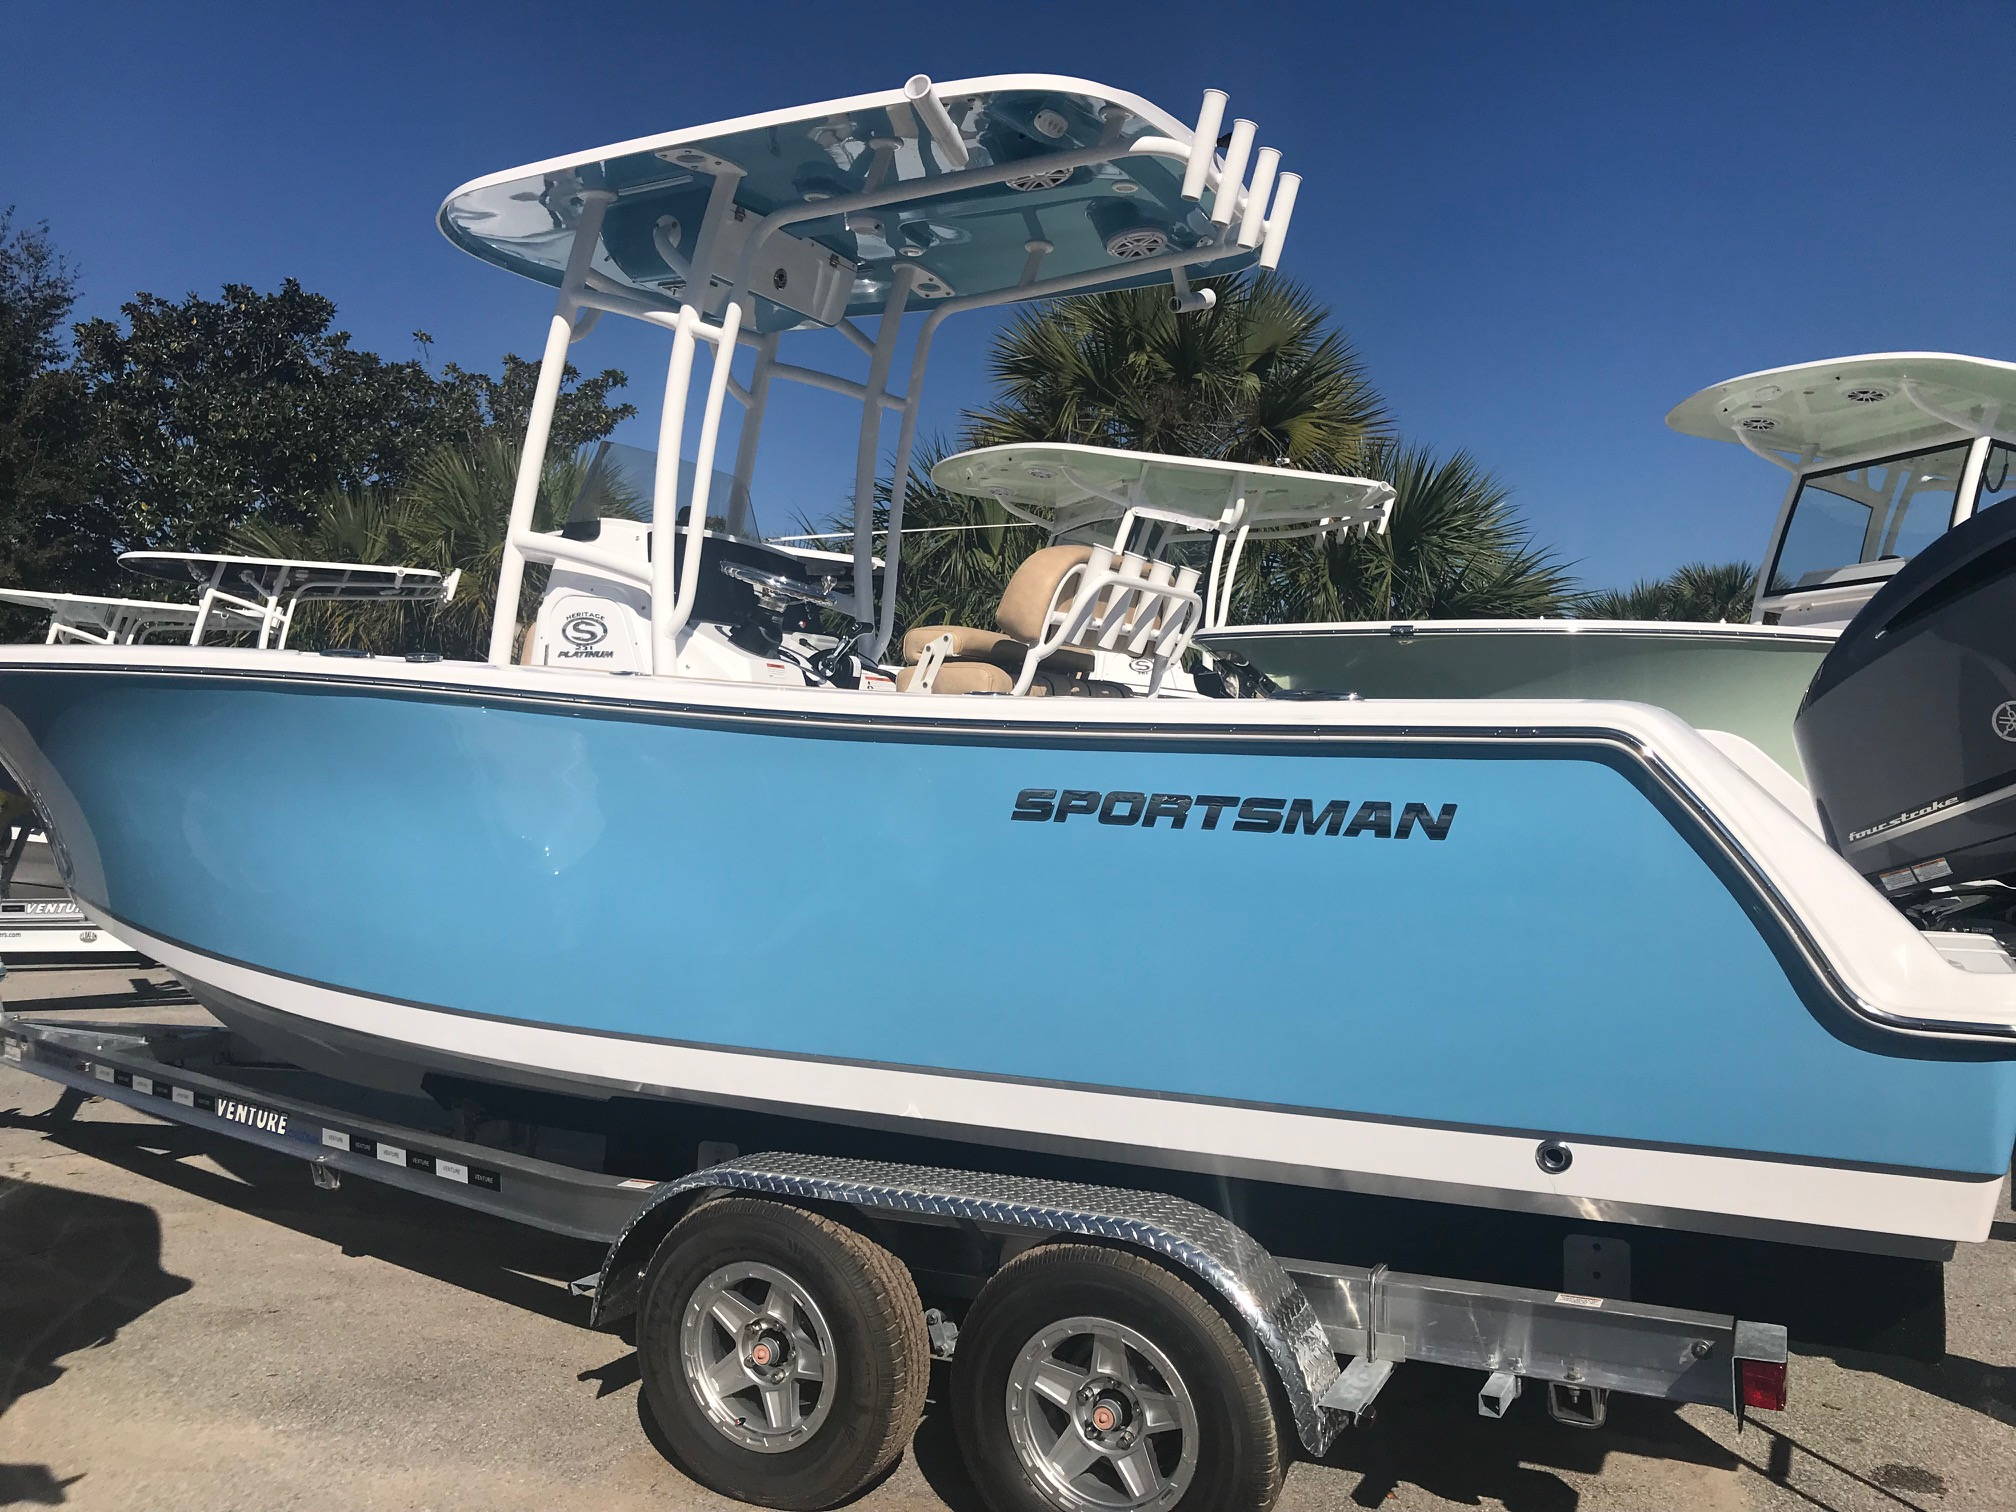 Sportsman Boats Heritage 231 Center Console